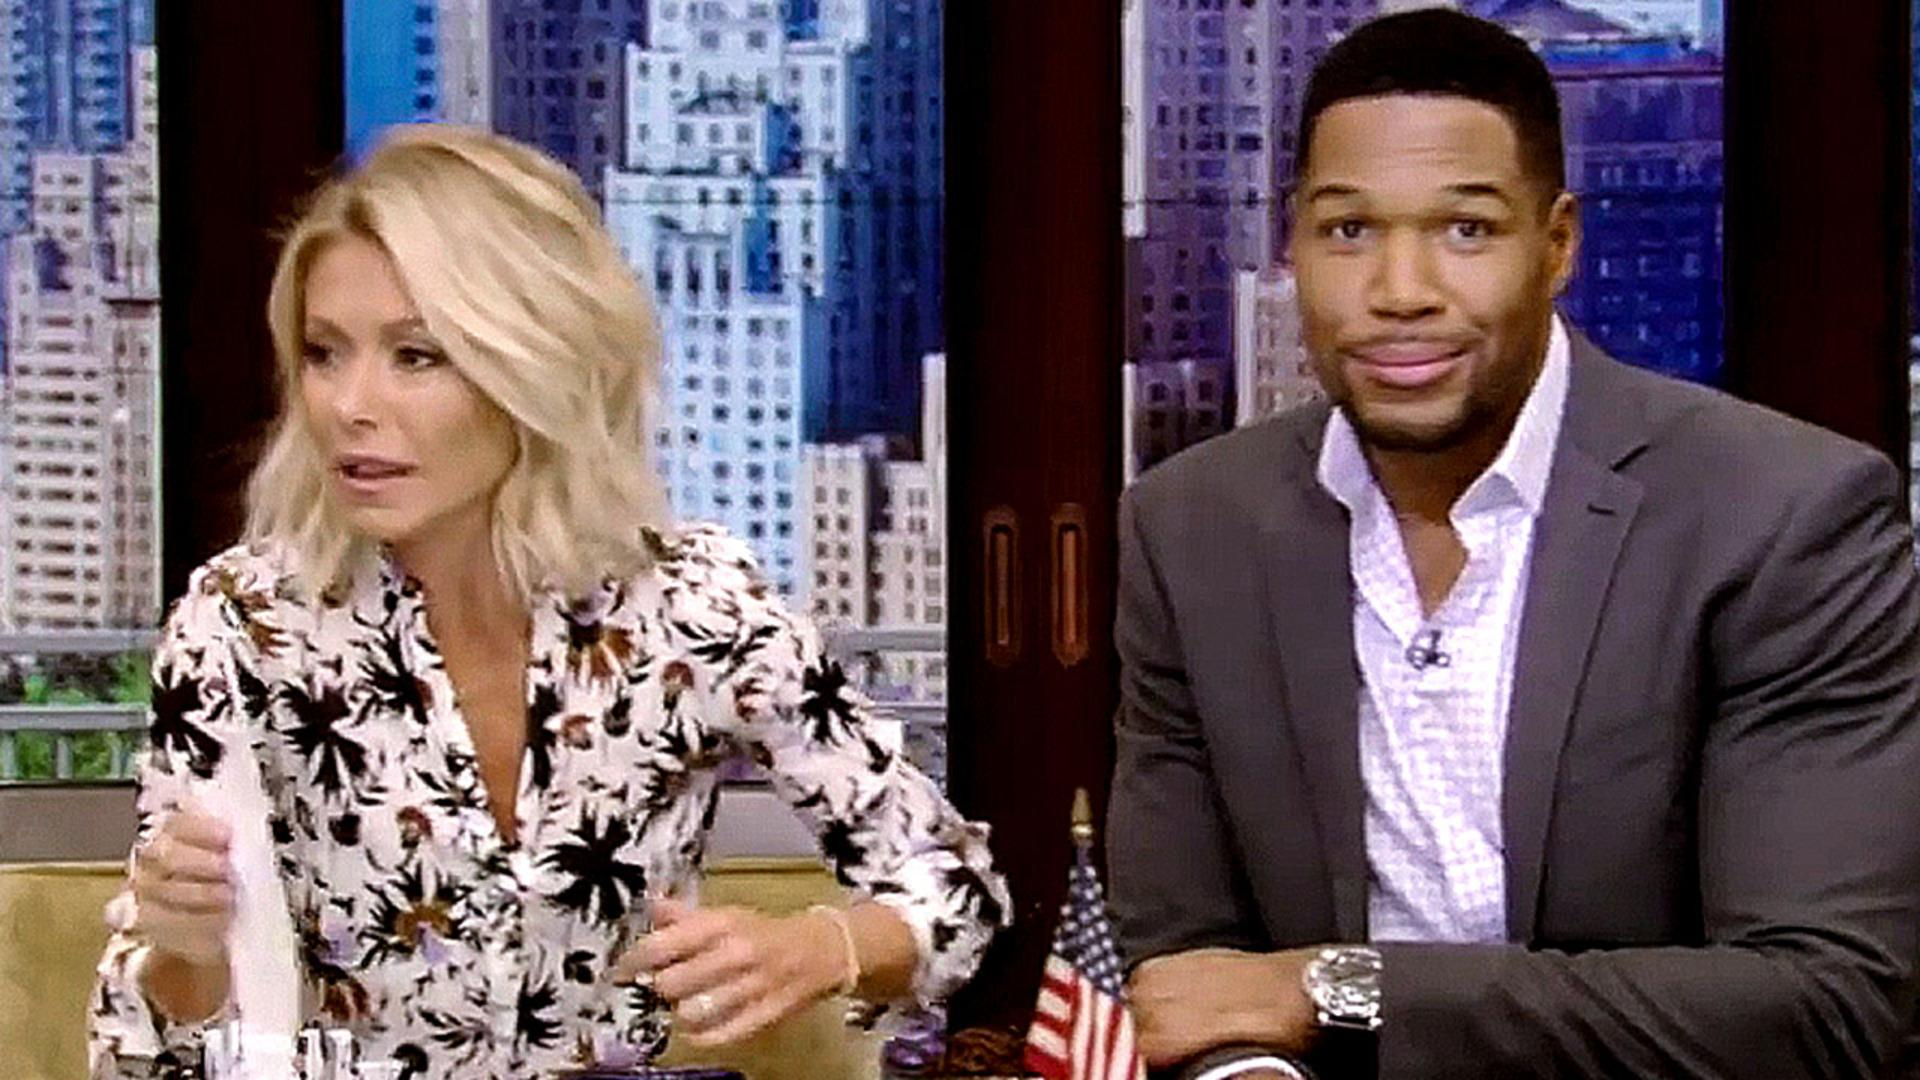 Kelly Ripa Slams Michael Strahan's Two Failed Marriages on 'Live!'